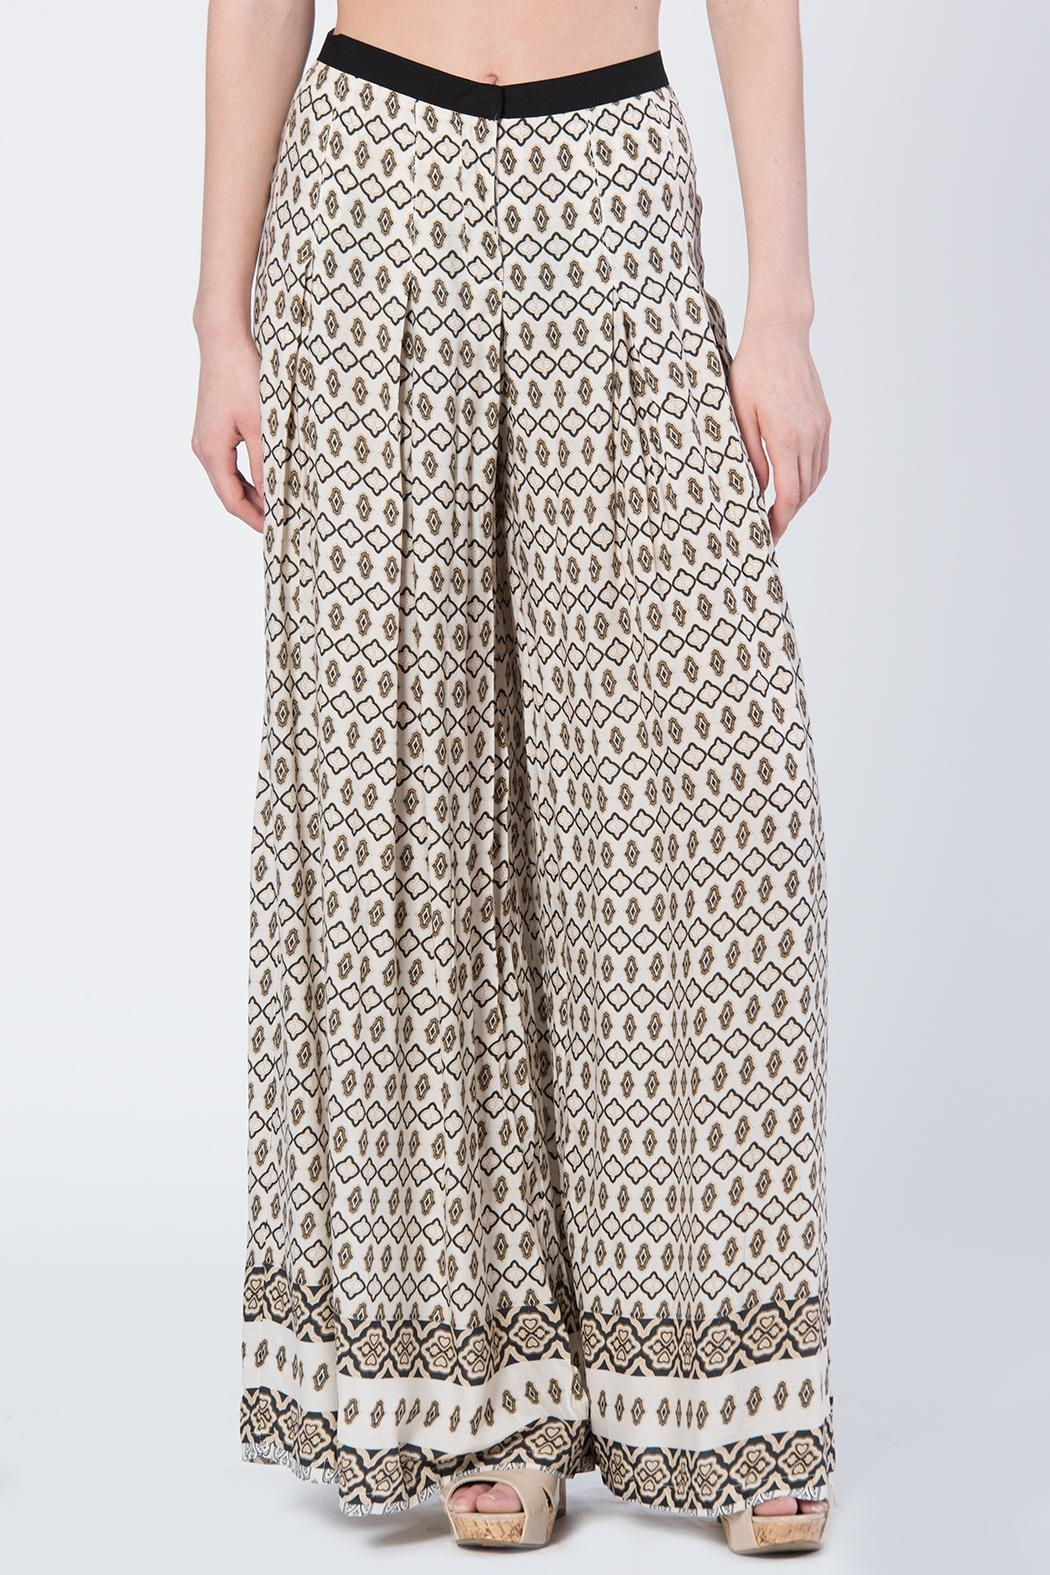 BEULAH STYLE Beulah Print Pants - Front Cropped Image